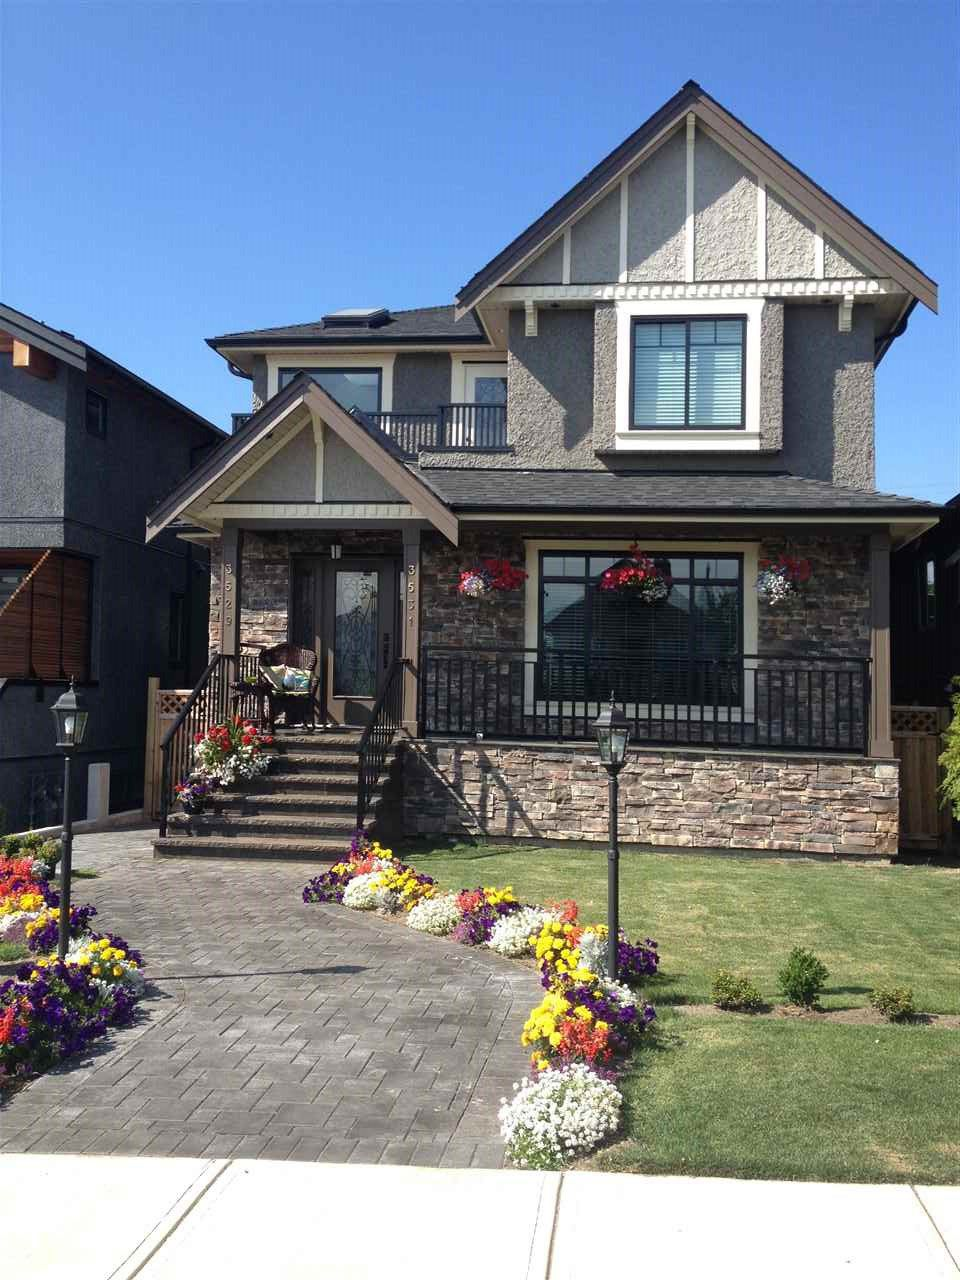 Main Photo: 3529 OXFORD Street in Vancouver: Hastings East House for sale (Vancouver East)  : MLS®# R2141181